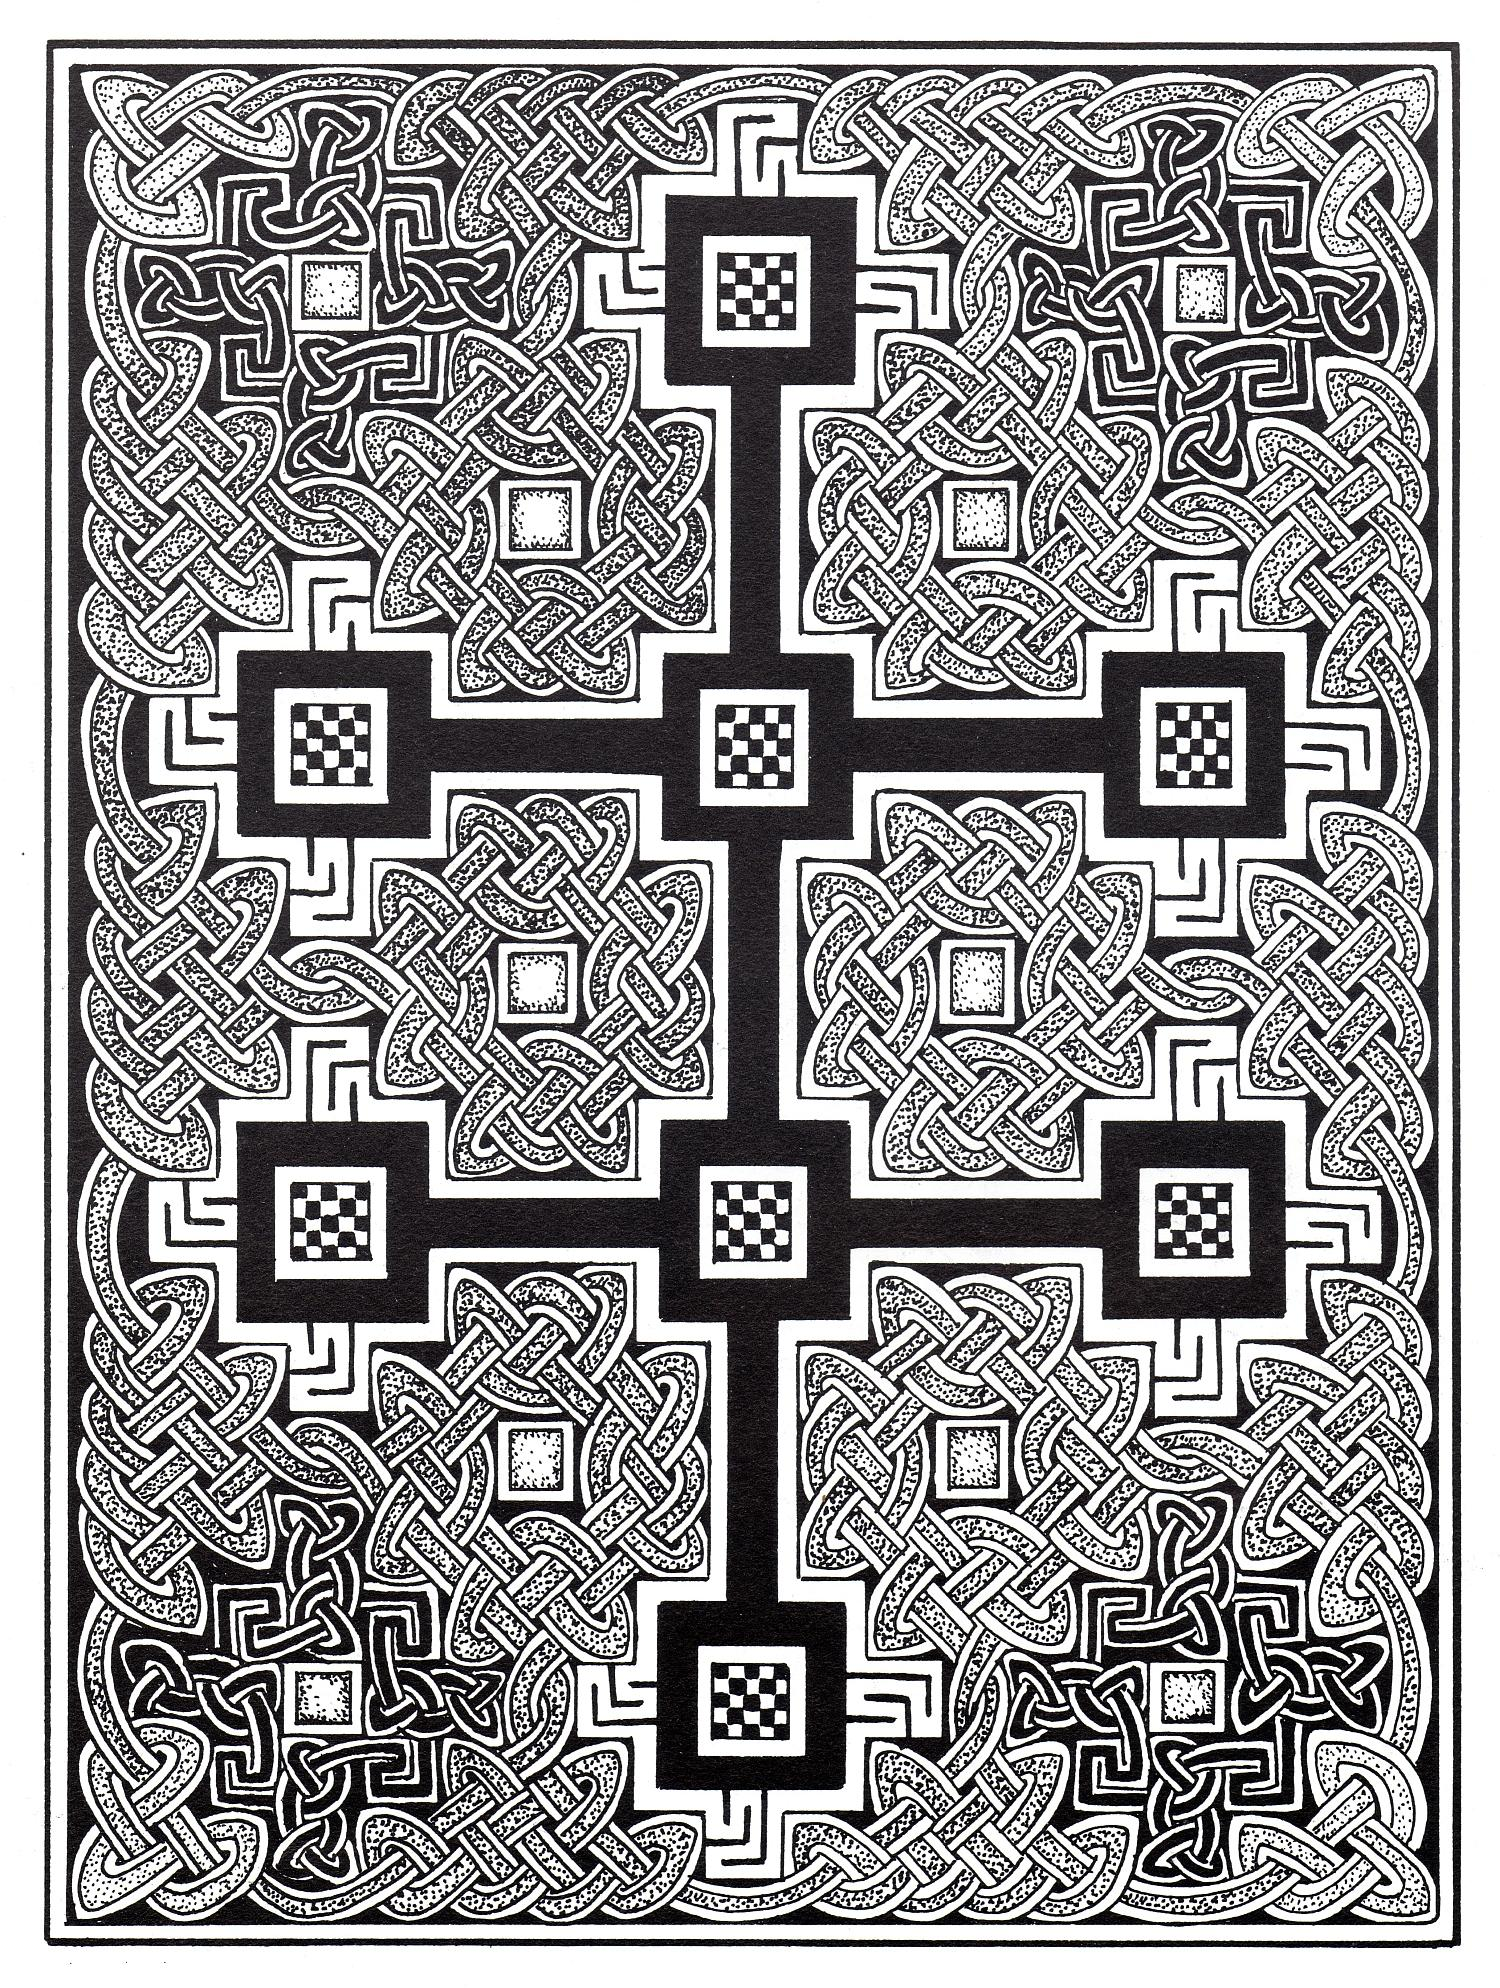 Complex Celtic art design